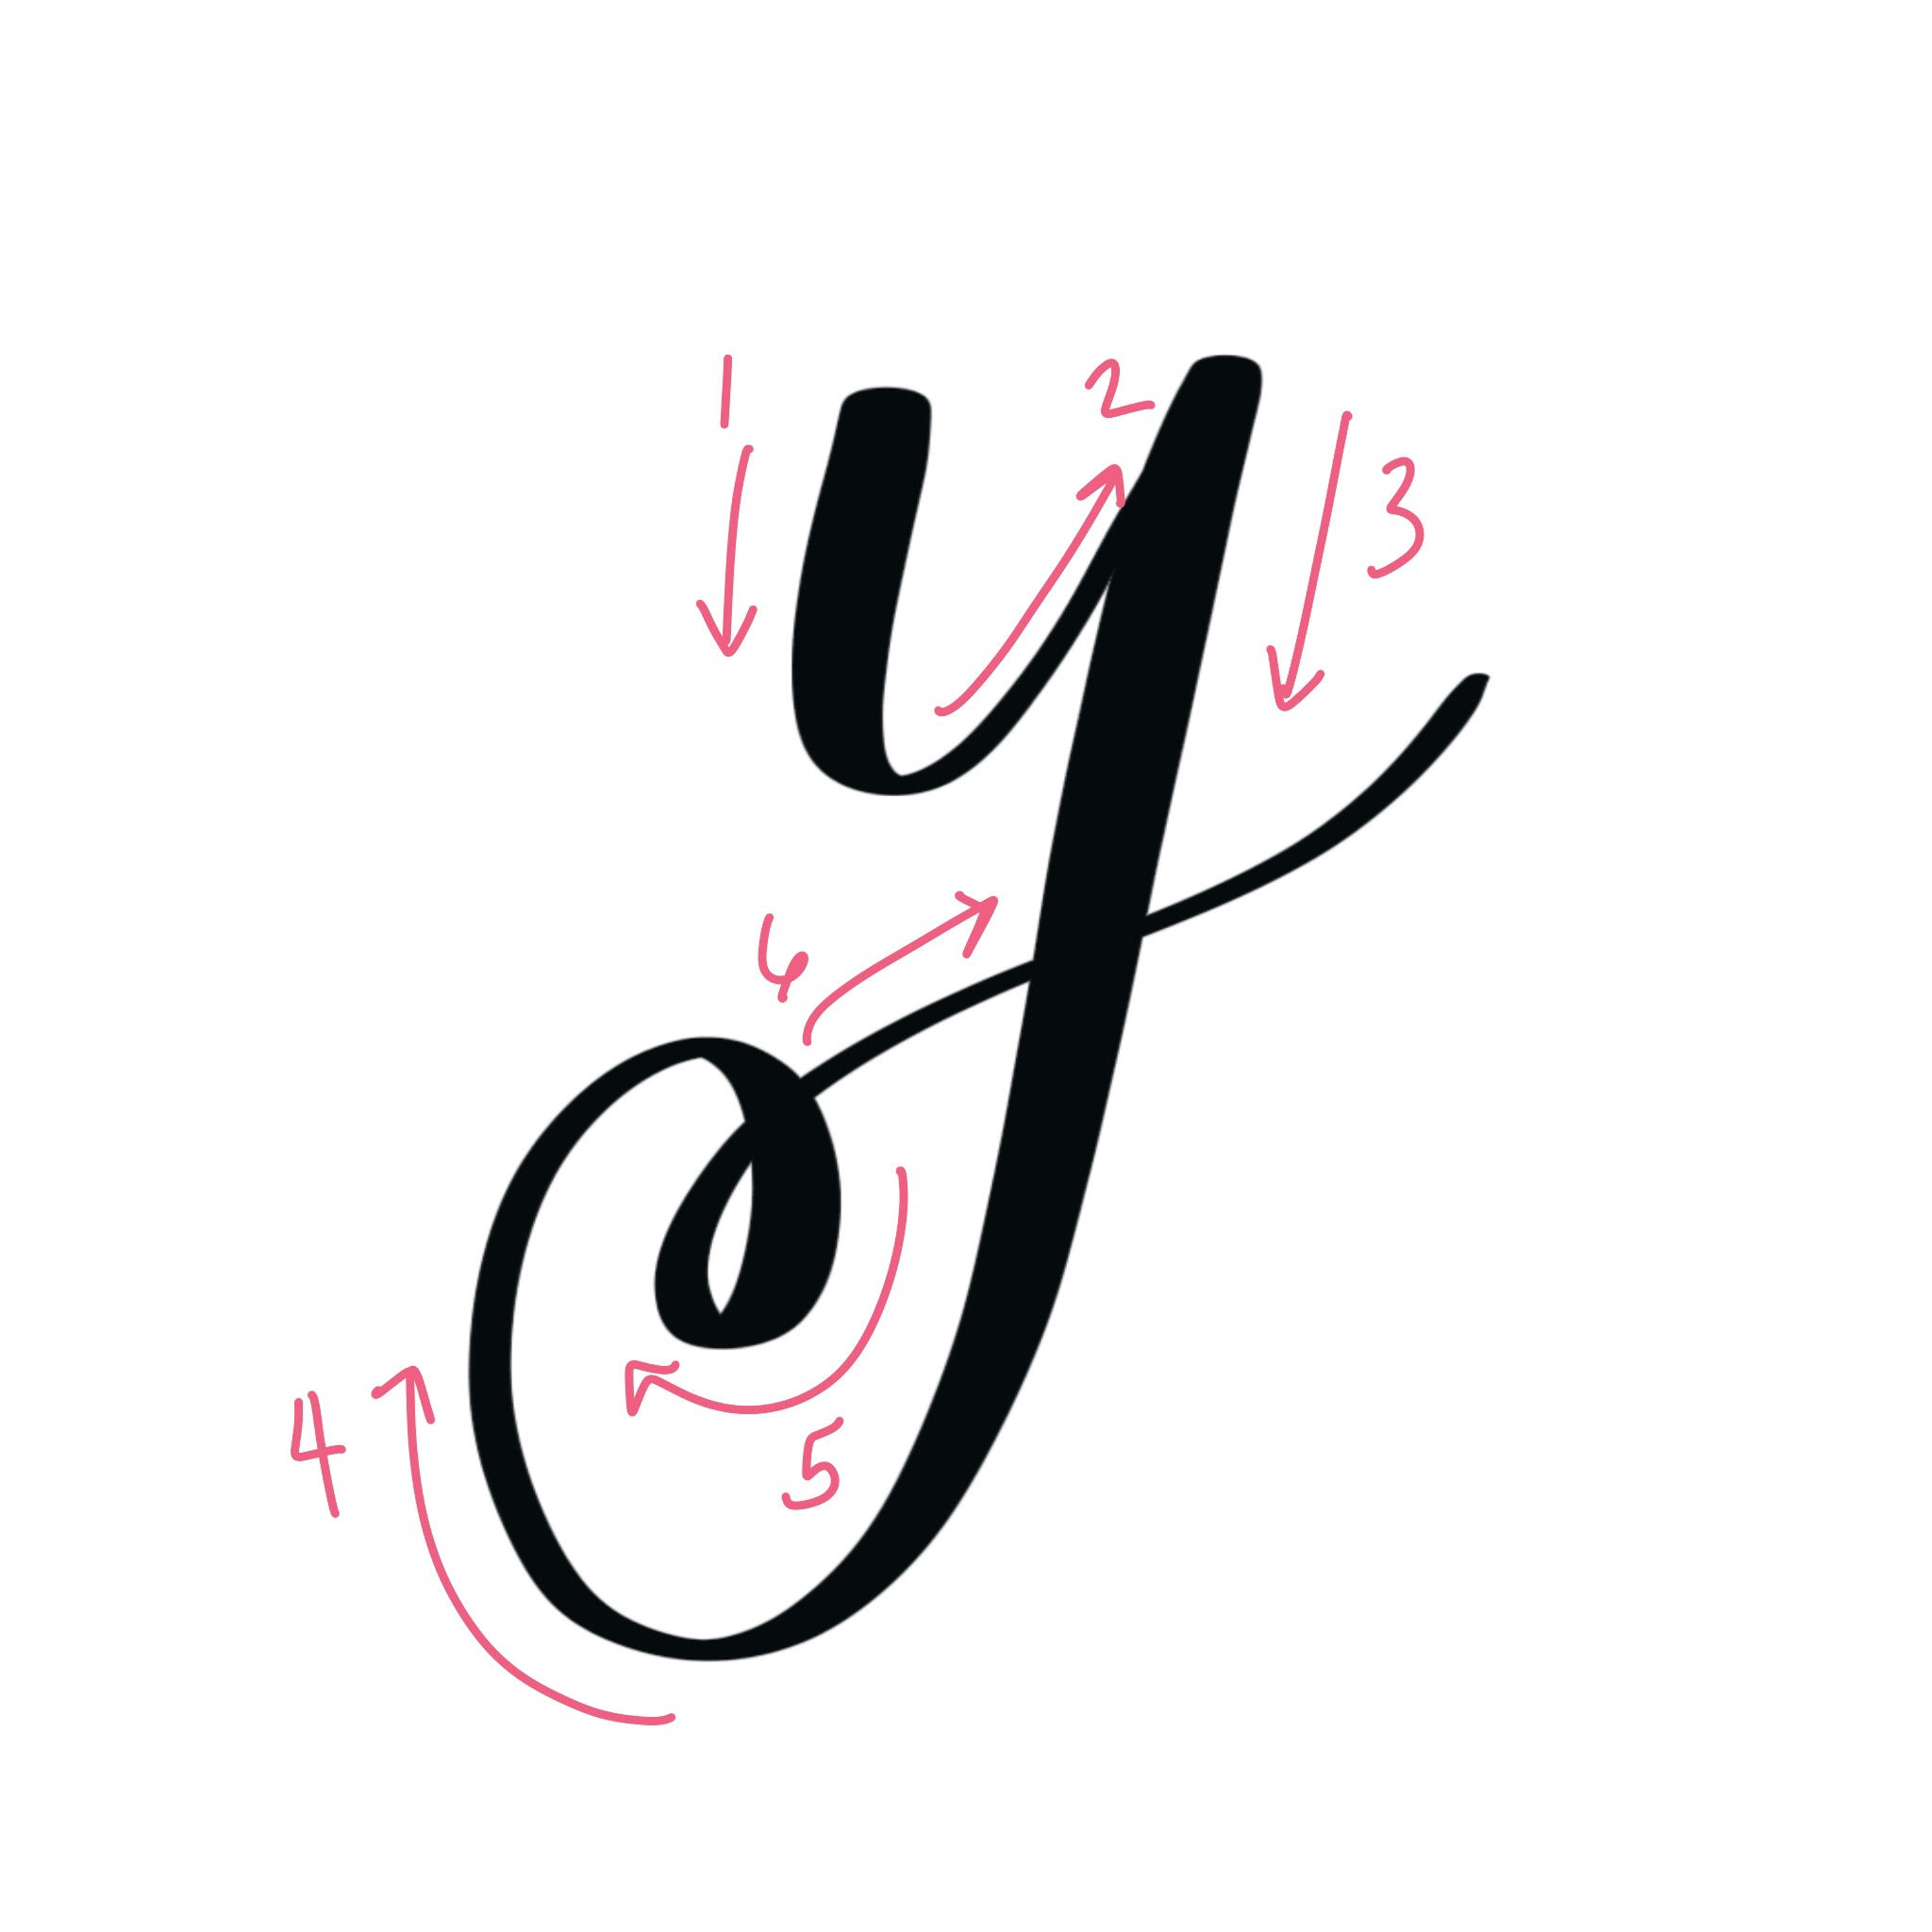 Descender Letter Flourishes & Free Practice Sheets